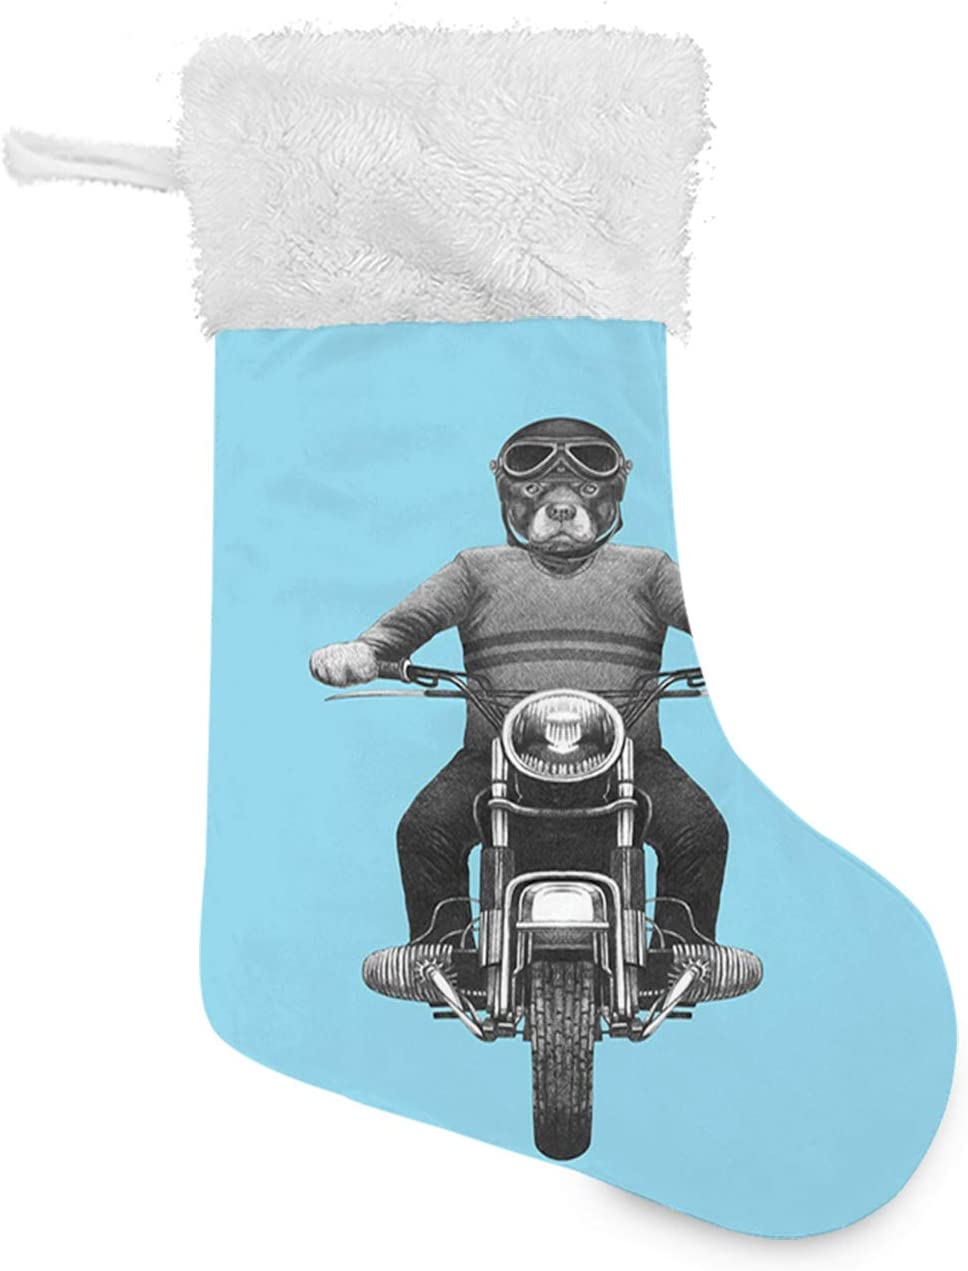 FULIYA Christmas Stocking, Dog Breed Riding Motorcycle Adventurous Scooter Hard Hat, Xmas Character 3D Plush with Faux Fur Cuff Christmas Decorations and Party Accessory